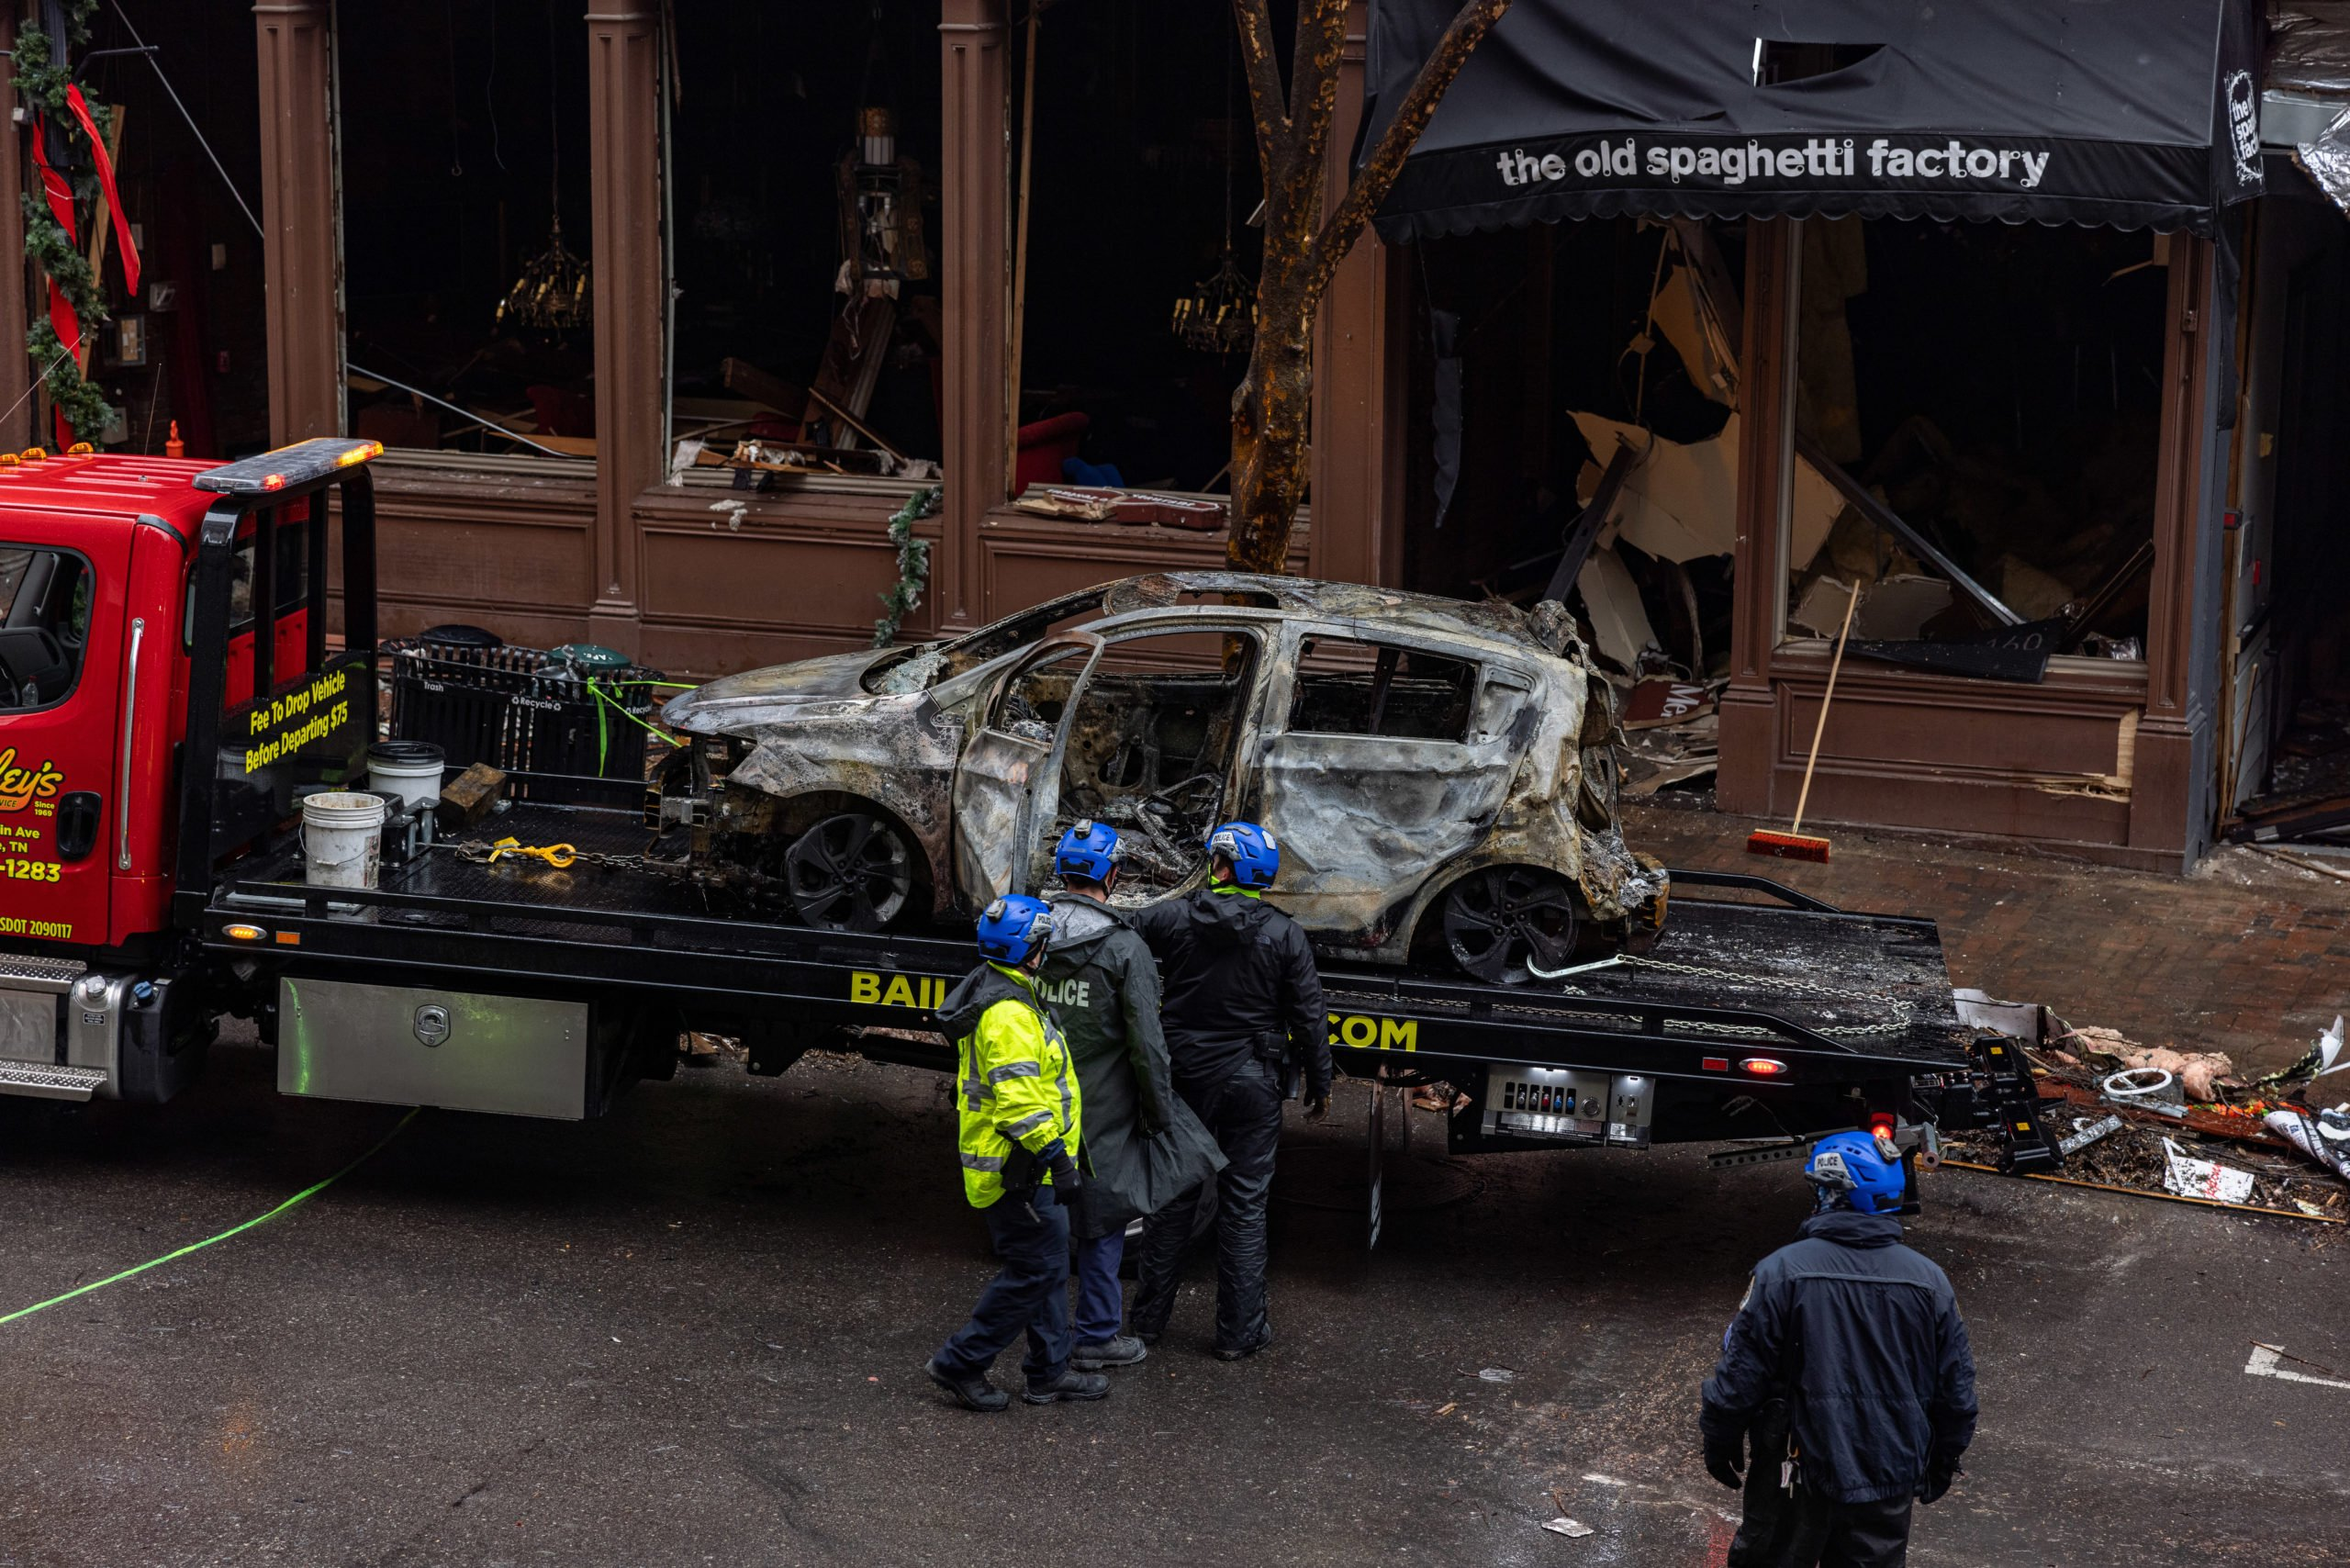 NASHVILLE, TN - DECEMBER 31: MNPD inspects the inside of an incinerated vehicle before it is towed from Second Avenue on Decemeber 31, 2020 in Nashville, TN. On Christmas morning, suspect Anthony Warner detonated an R.V. packed with explosives in Downtown Nashville damaging over forty buildings in Nashville's Historic District. (Photo by Alex Kent/Getty Images)